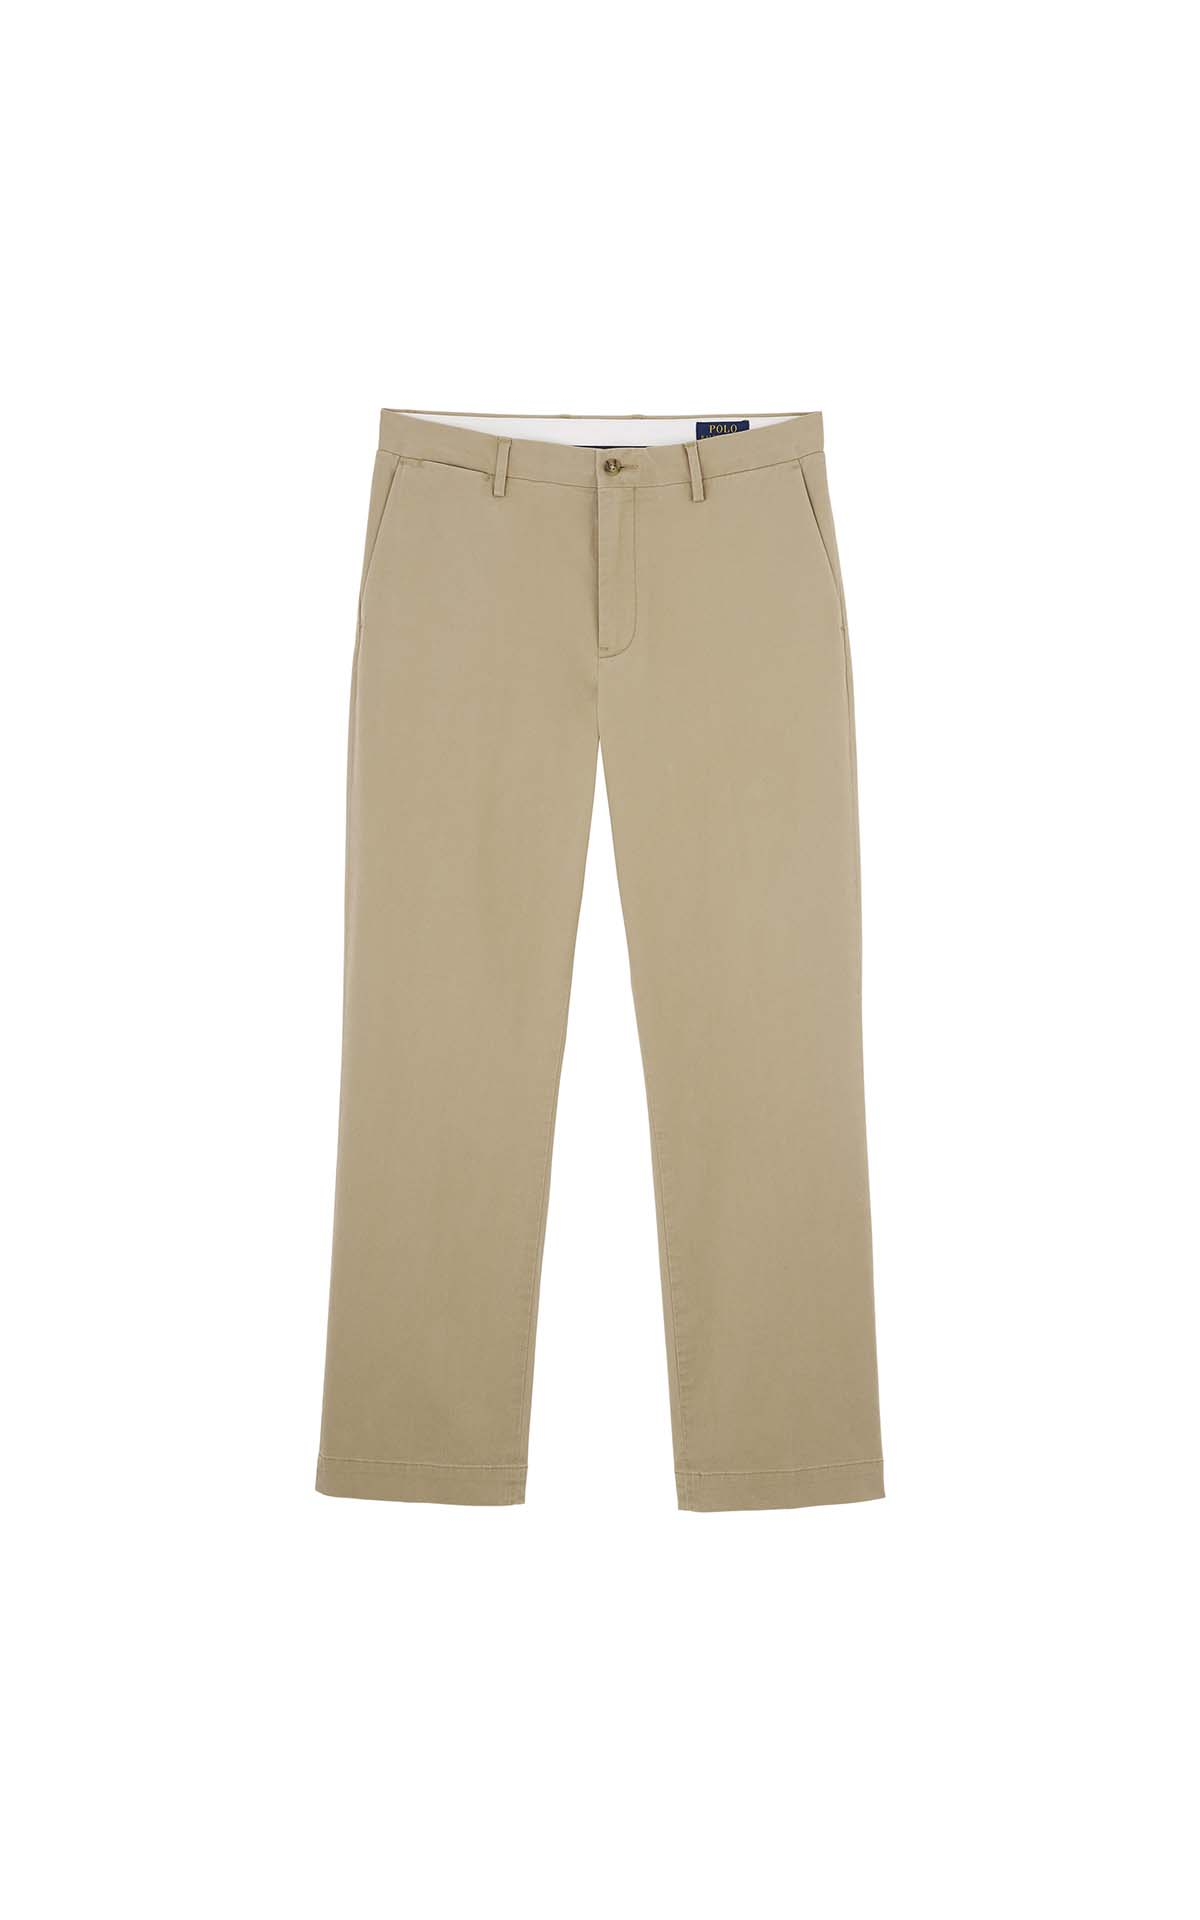 Polo Ralph Lauren Slimfit newport pant at The Bicester Village Shopping Collection